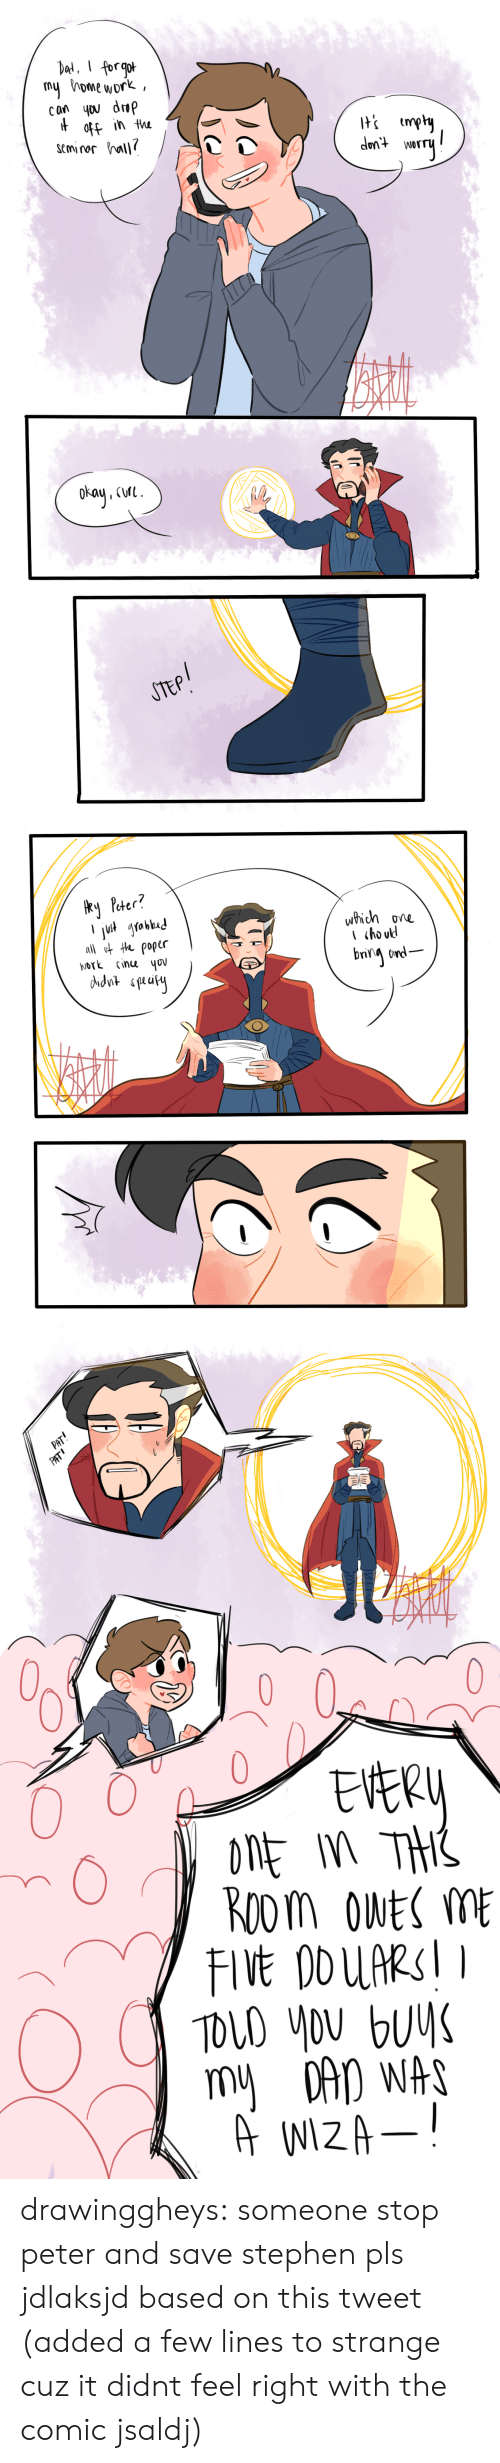 eer: my home work  off in the  scmiror hall   Peter?  which one  work inuo  bnin d-   EER  TOLD you buy  nm drawinggheys:  someone stop peter and save stephen pls jdlaksjd based on this tweet  (added a few lines to strange cuz it didnt feel right with the comic jsaldj)